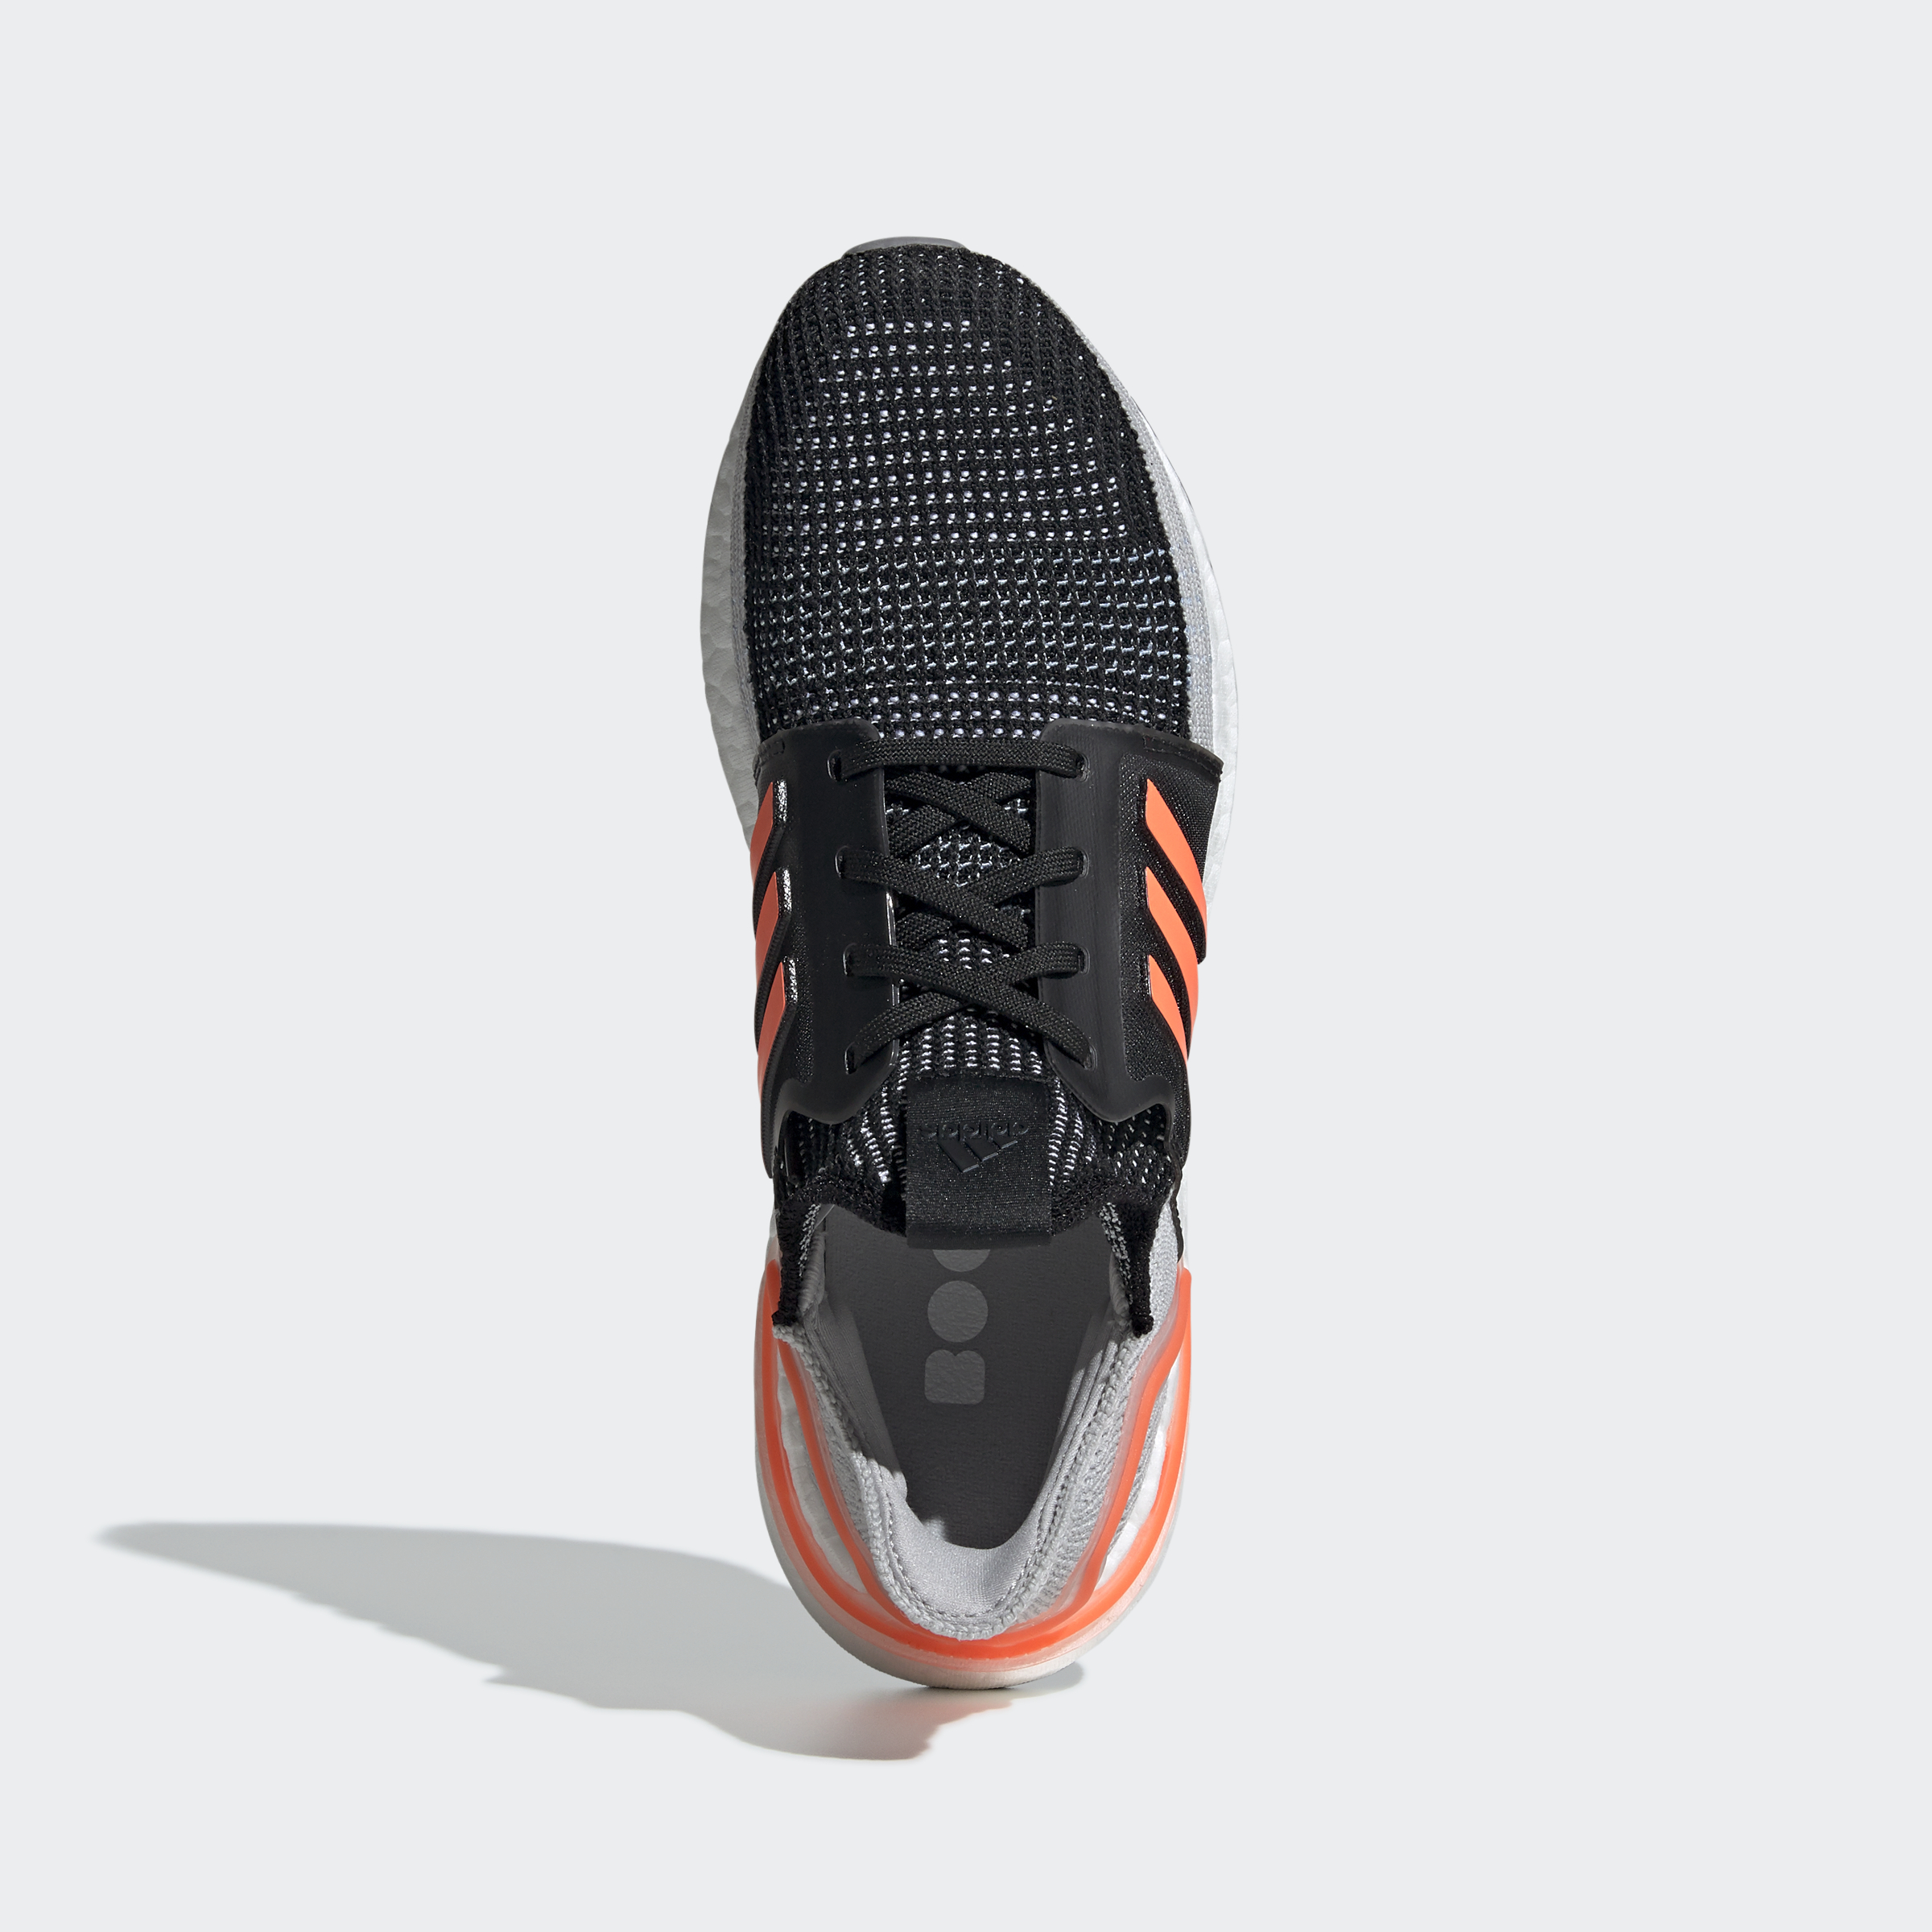 adidas-Ultraboost-19-Shoes-Athletic-amp-Sneakers thumbnail 120